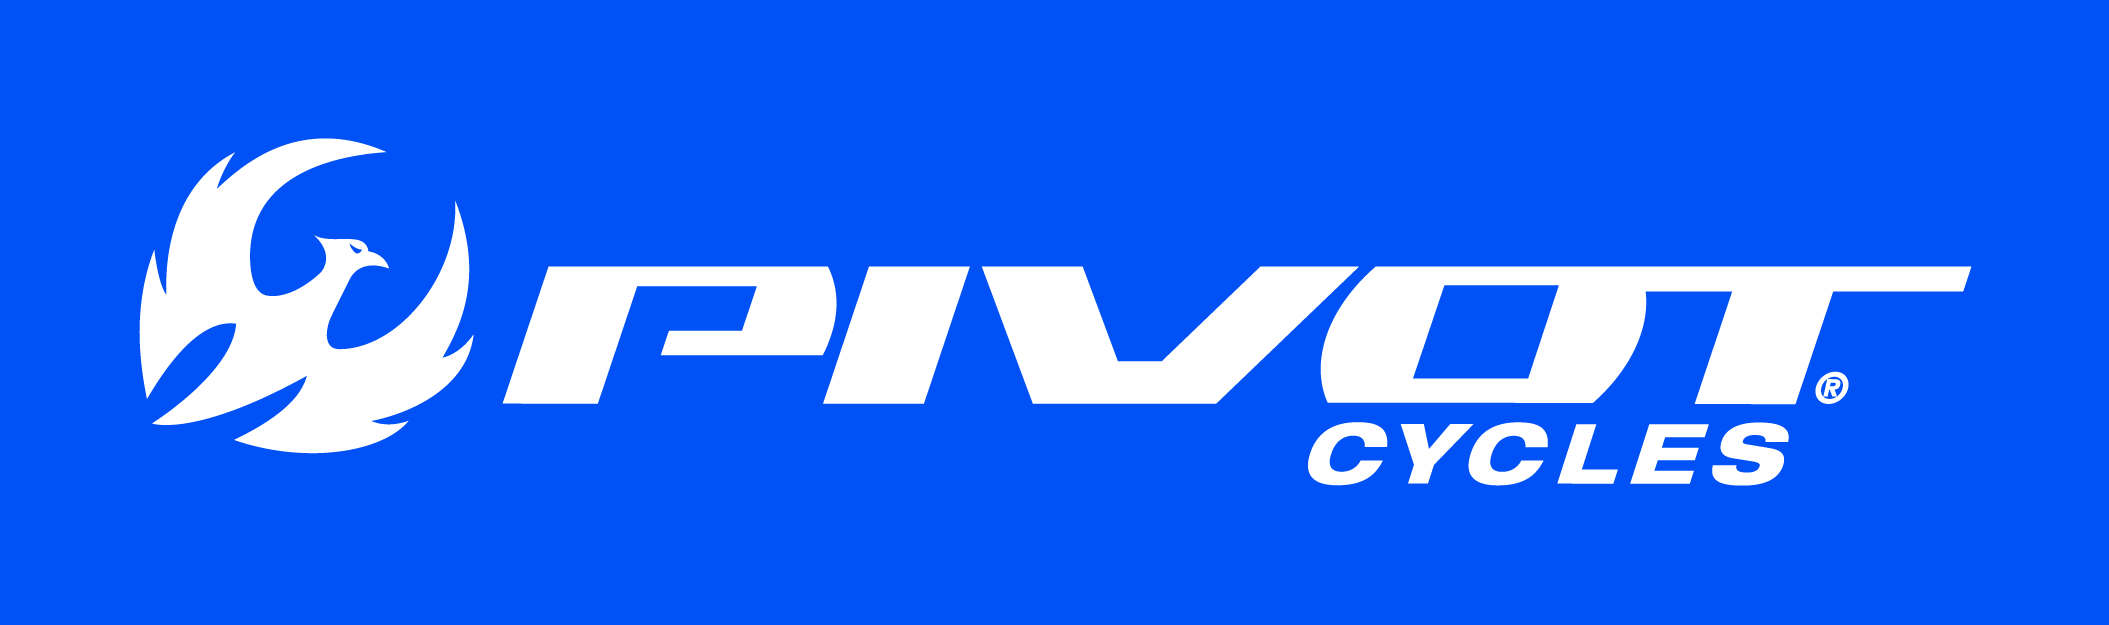 We are now an official Pivot dealer!